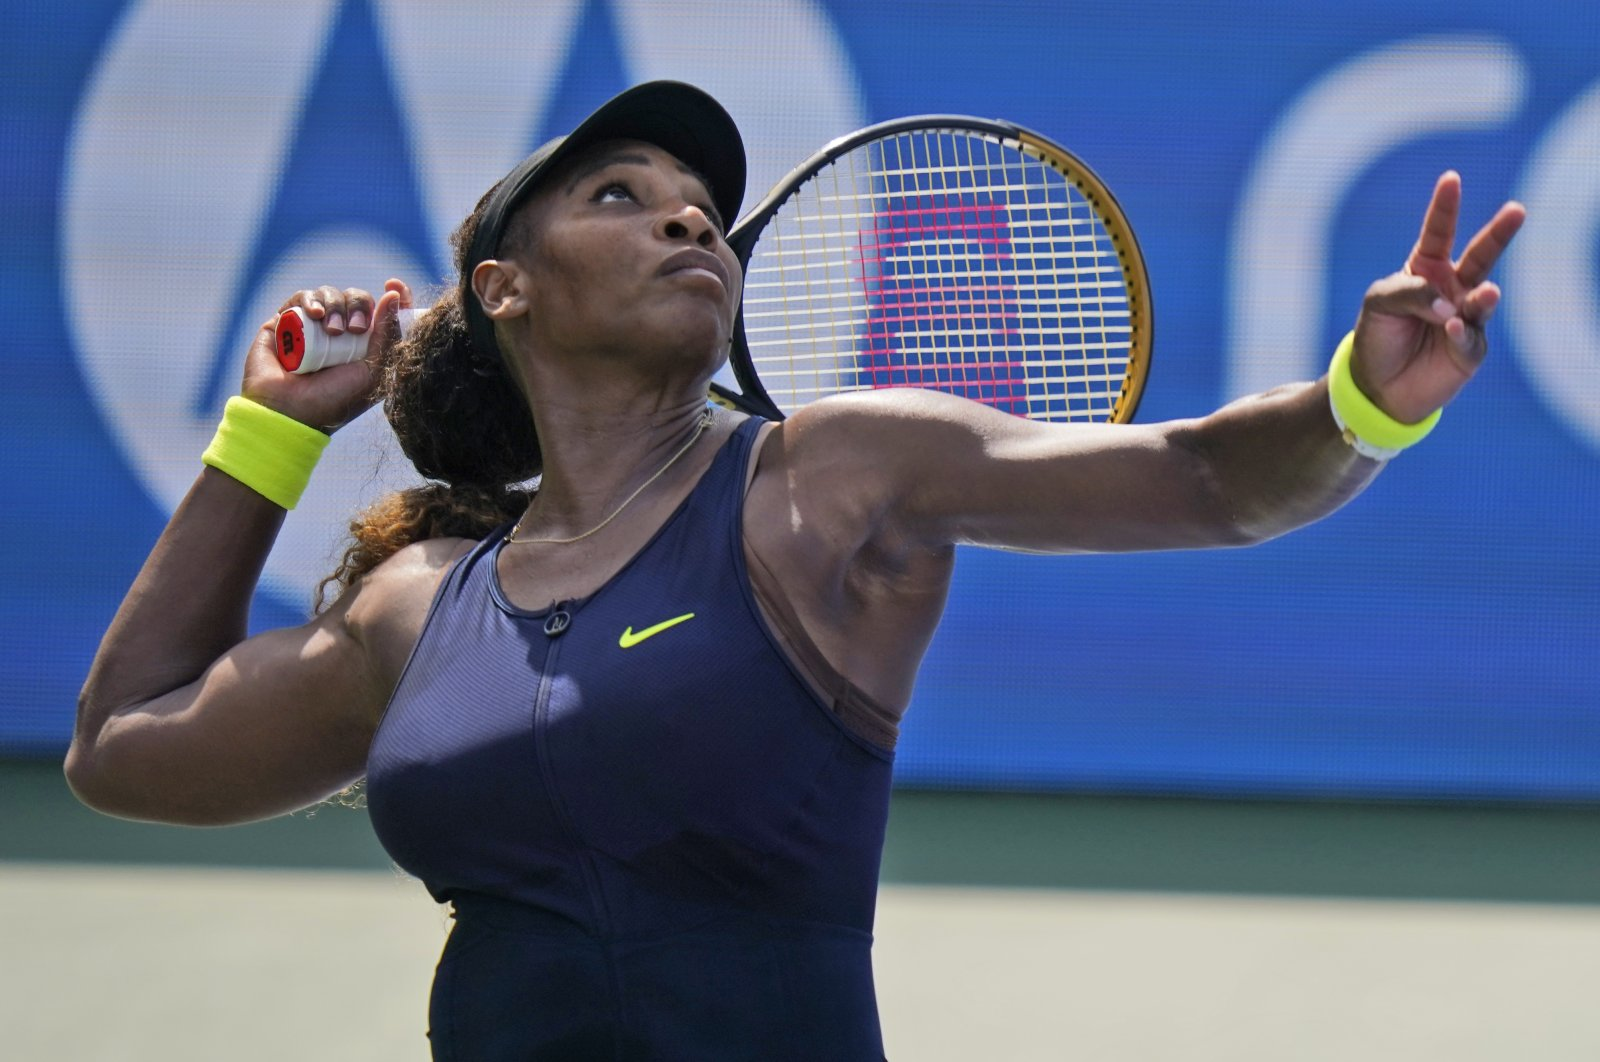 Serena Williams serves to Arantxa Rus, of the Netherlands, during the second round at the Western & Southern Open tennis tournament in New York, Aug. 24, 2020. (AP Photo)